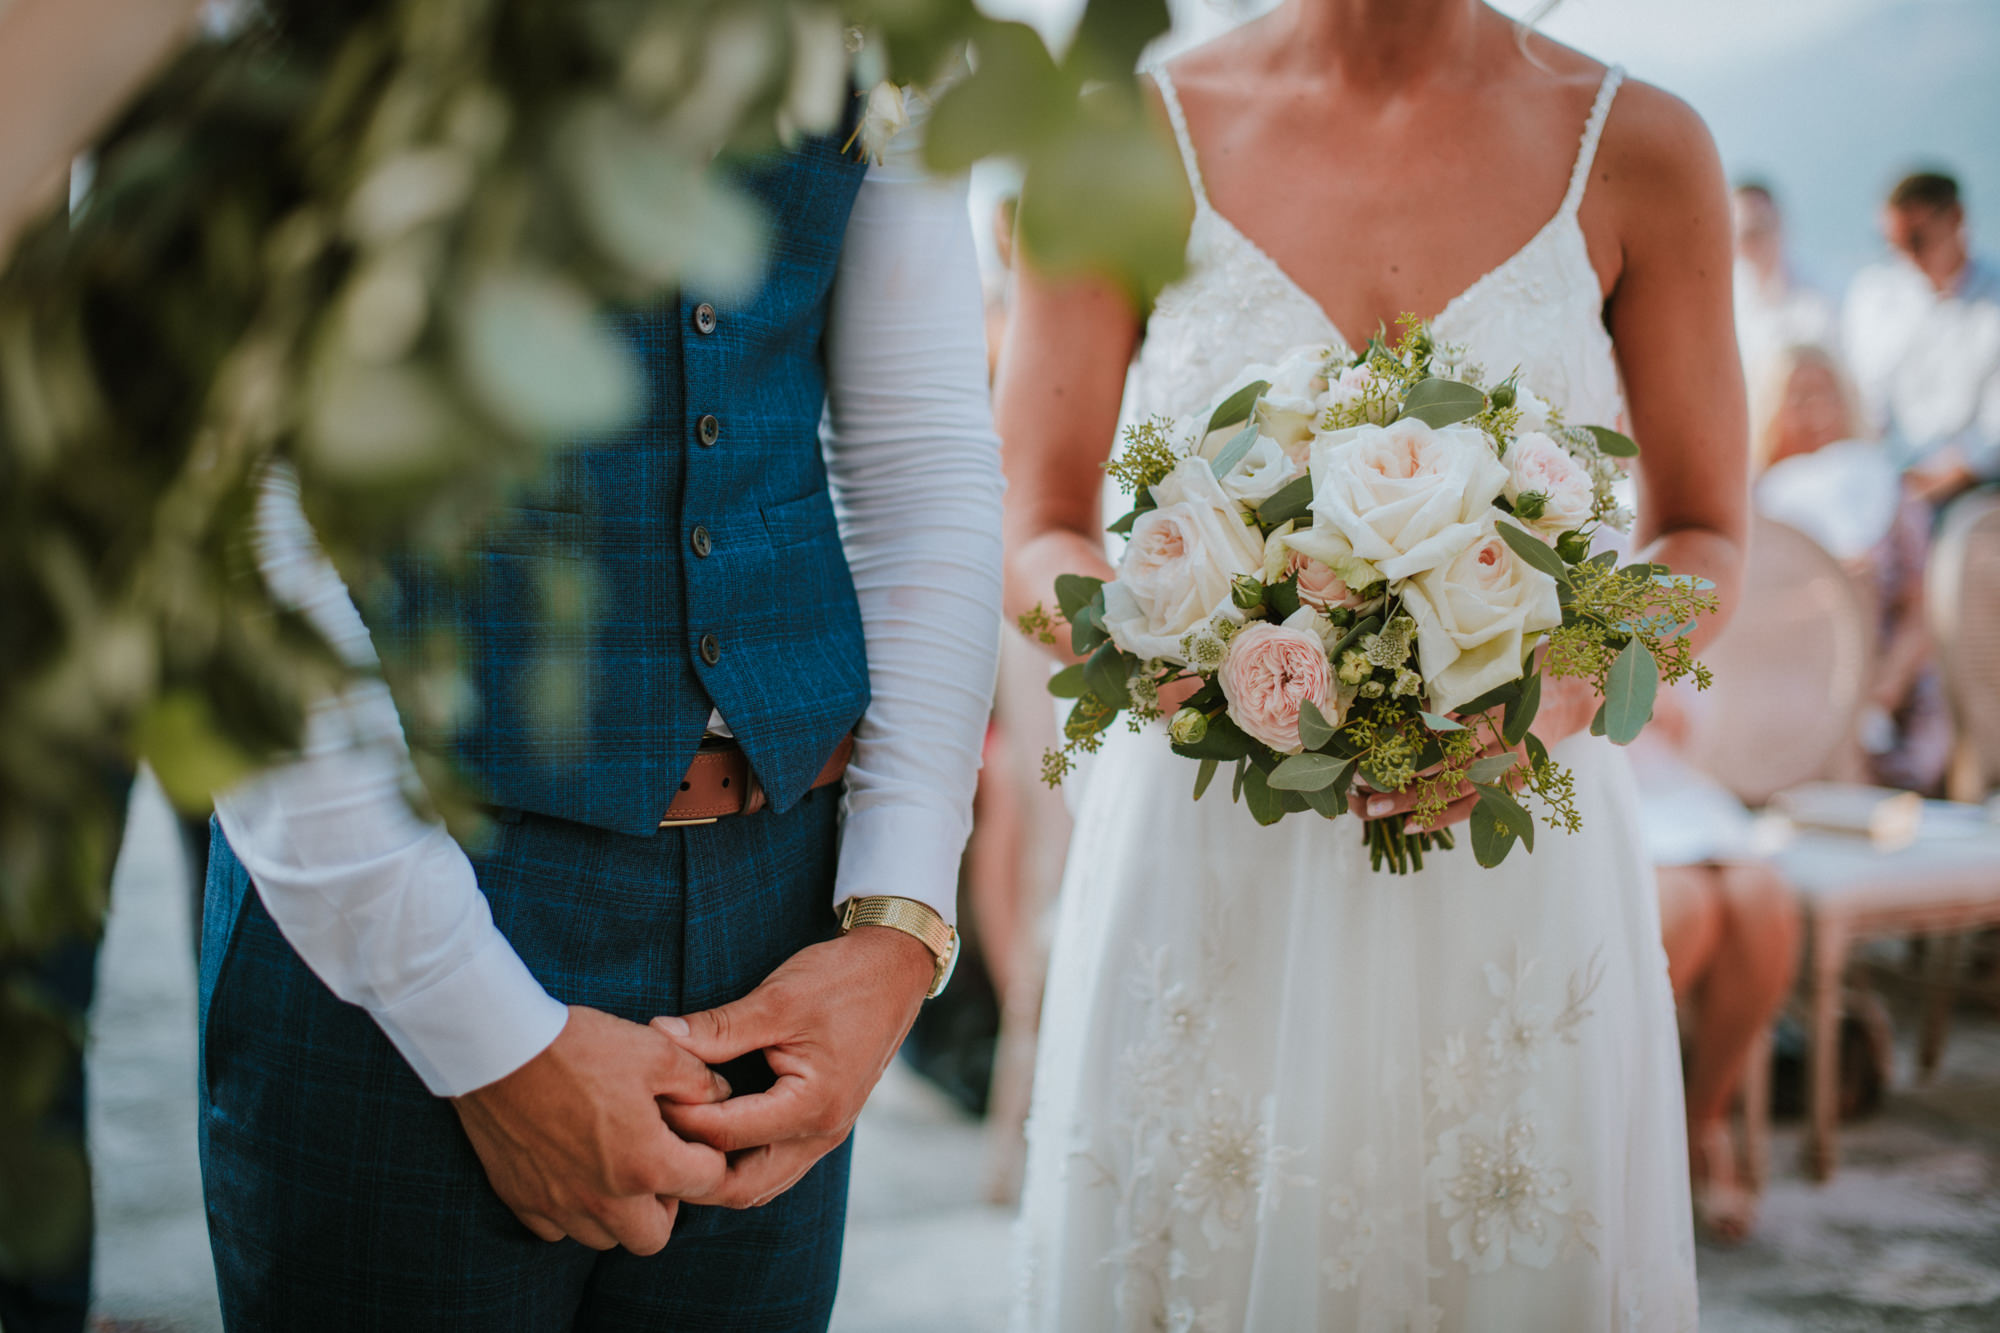 A close up image of the wedding couple on which we can't see their faces, but we can see that he is wearing a lovely navy suit with a vest and she has a simple sparkly wedding dress. She's holding her wedding bouquet of blush pink roses.